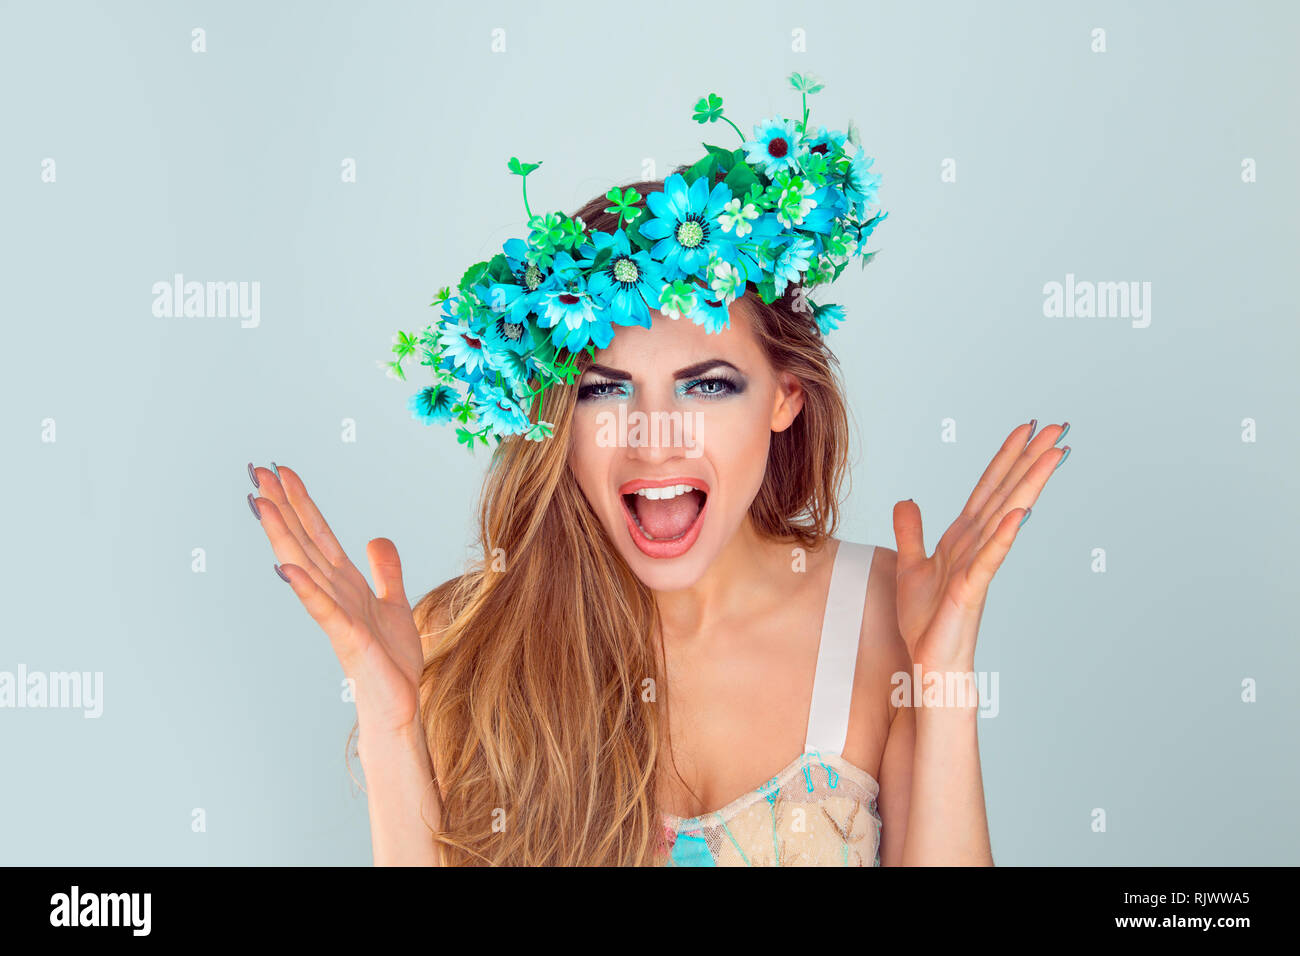 Angry woman with headband from flowers screaming in horror - Stock Image